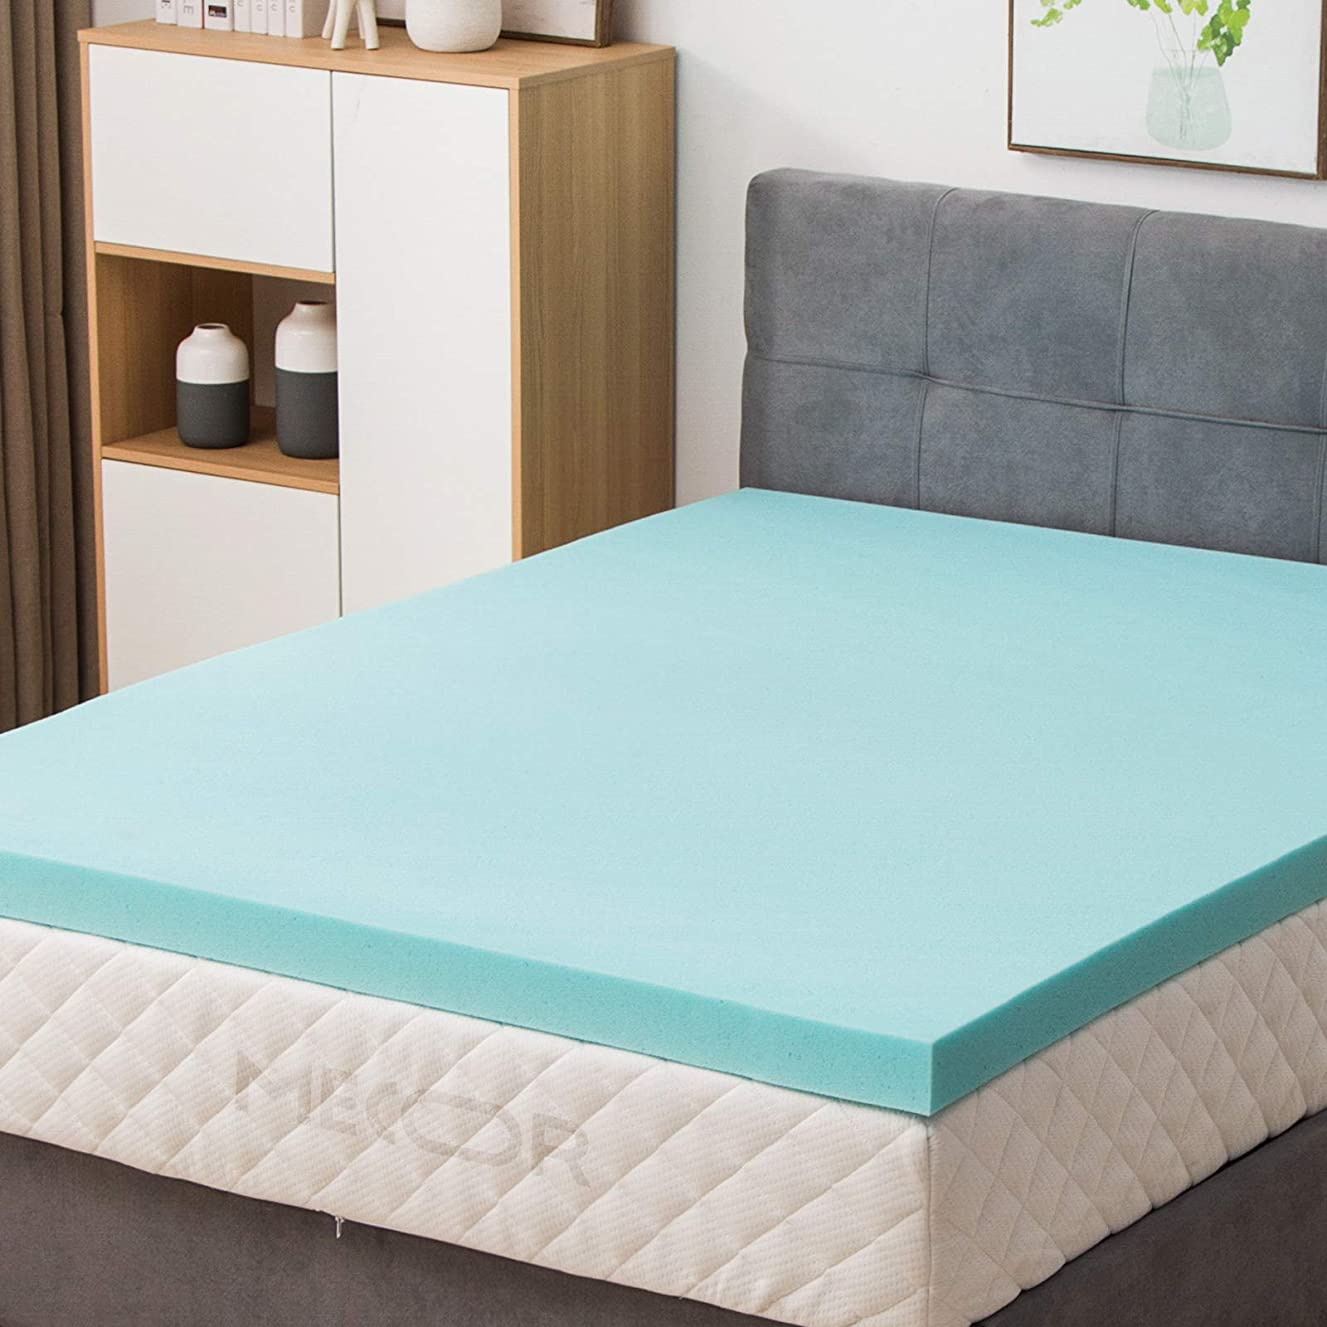 "Mecor 4 Inch 4"" Mattress Topper Queen-Gel Infused Memory Foam Mattress Topper w/CertiPUR-US Certified Foam, Soft but Firm Support, Blue"